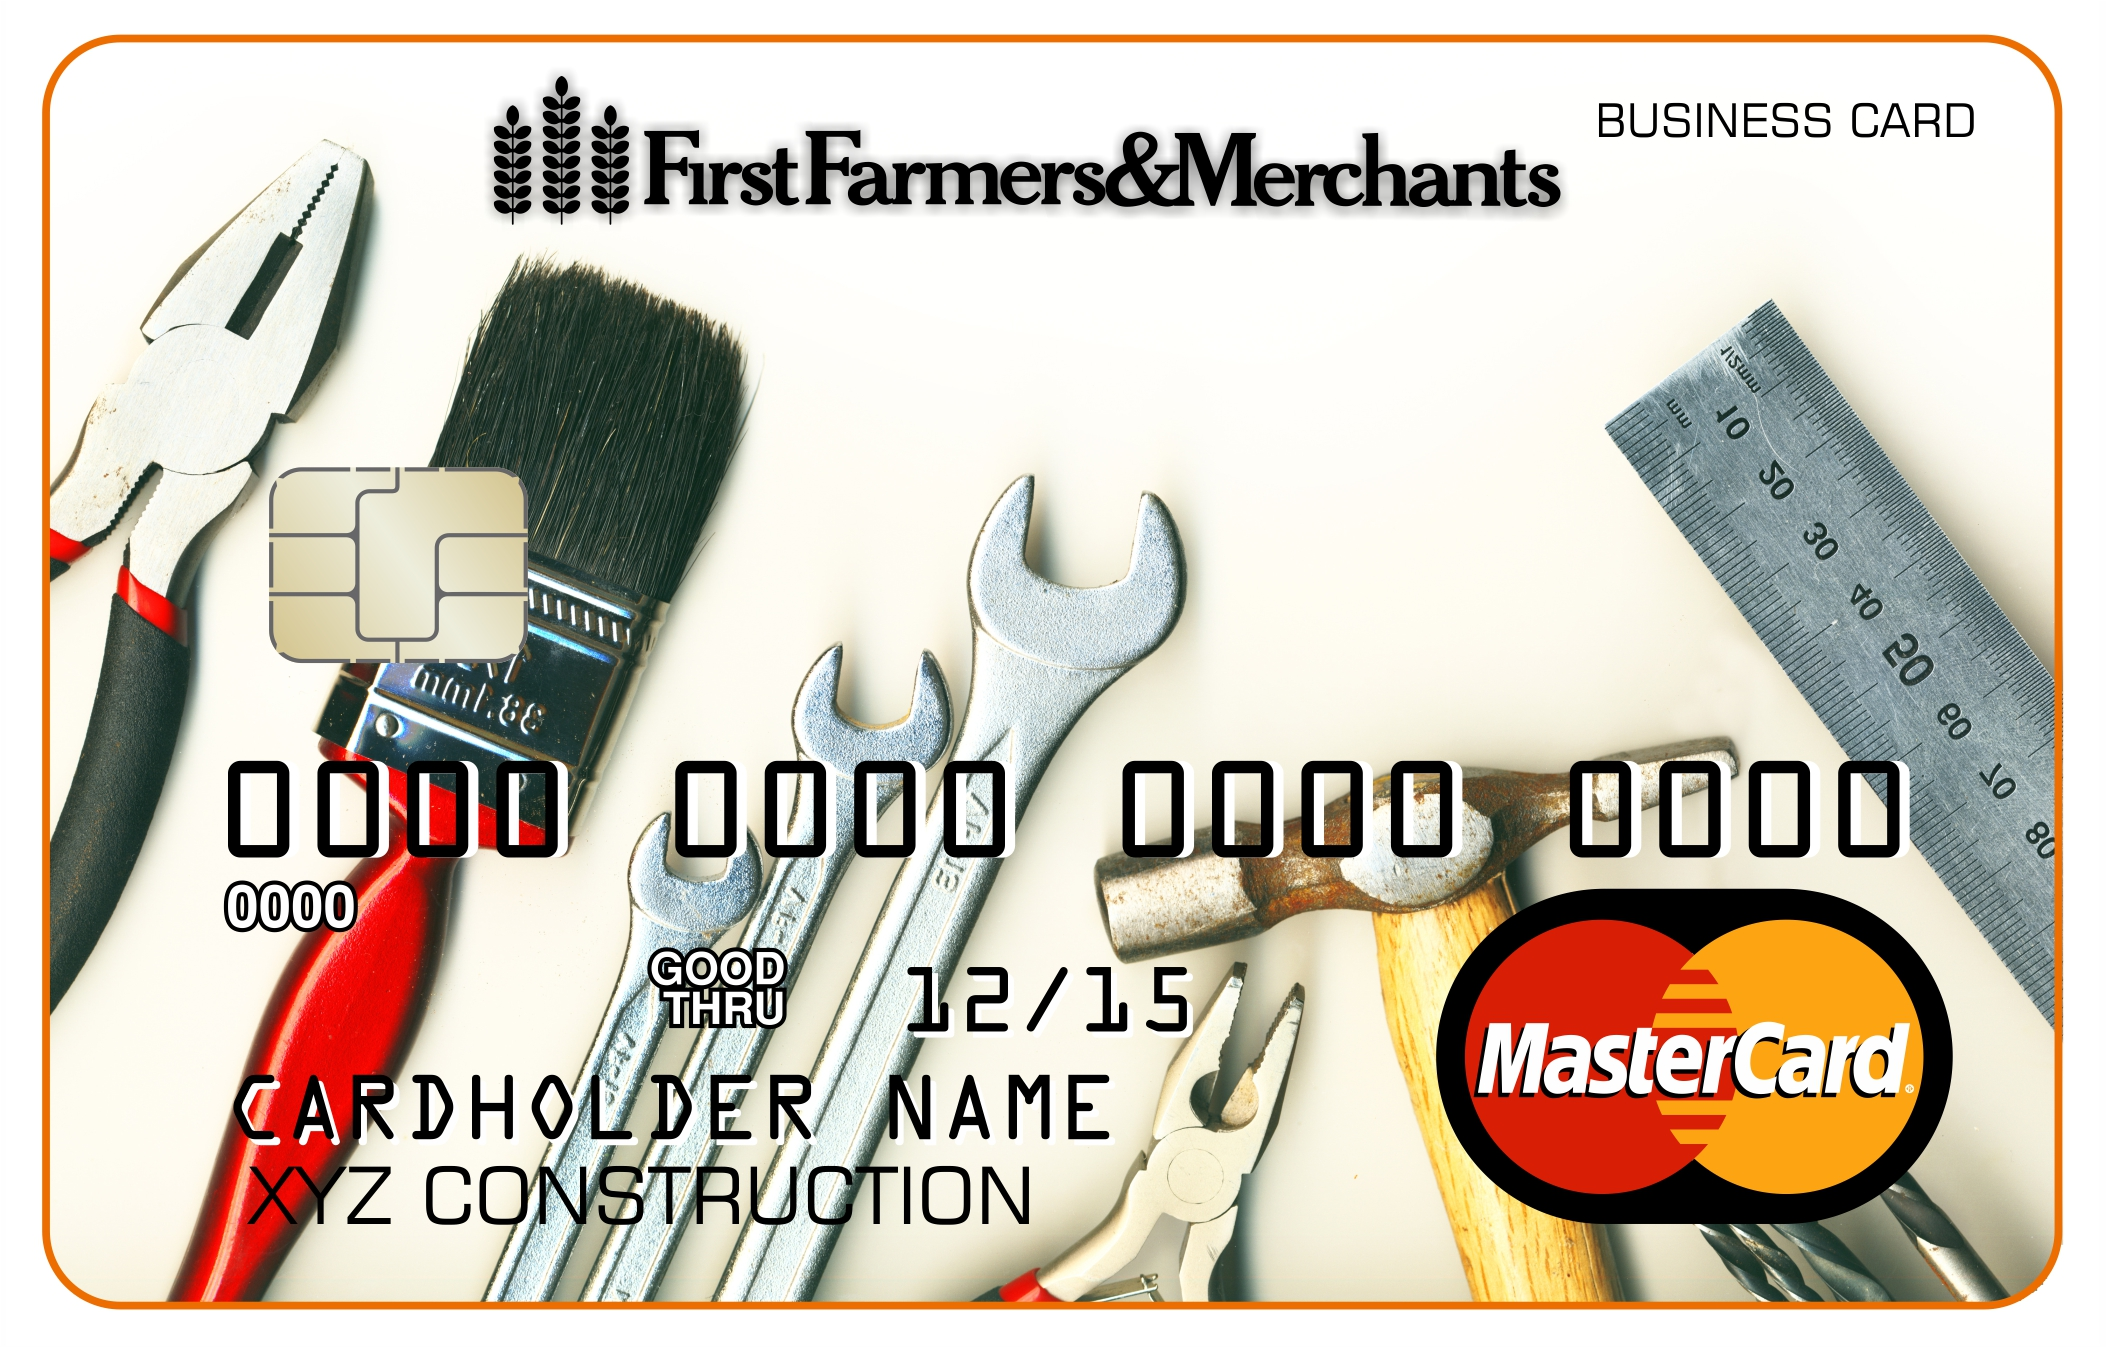 Image of a debit card with construction tools on it.